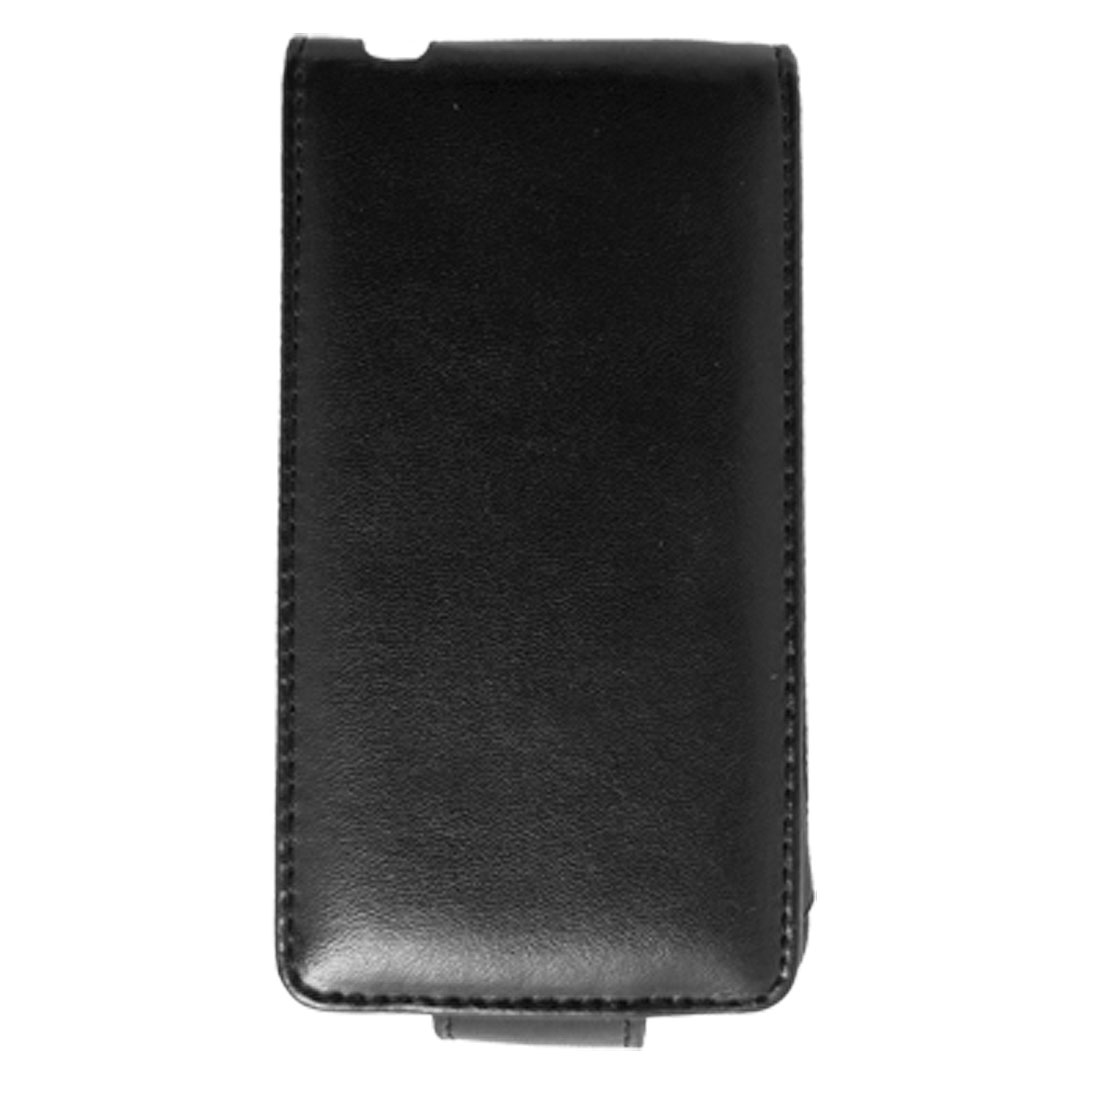 Black Vertical Faux Leather Pouch Case With Clip for iPhone 4 4G